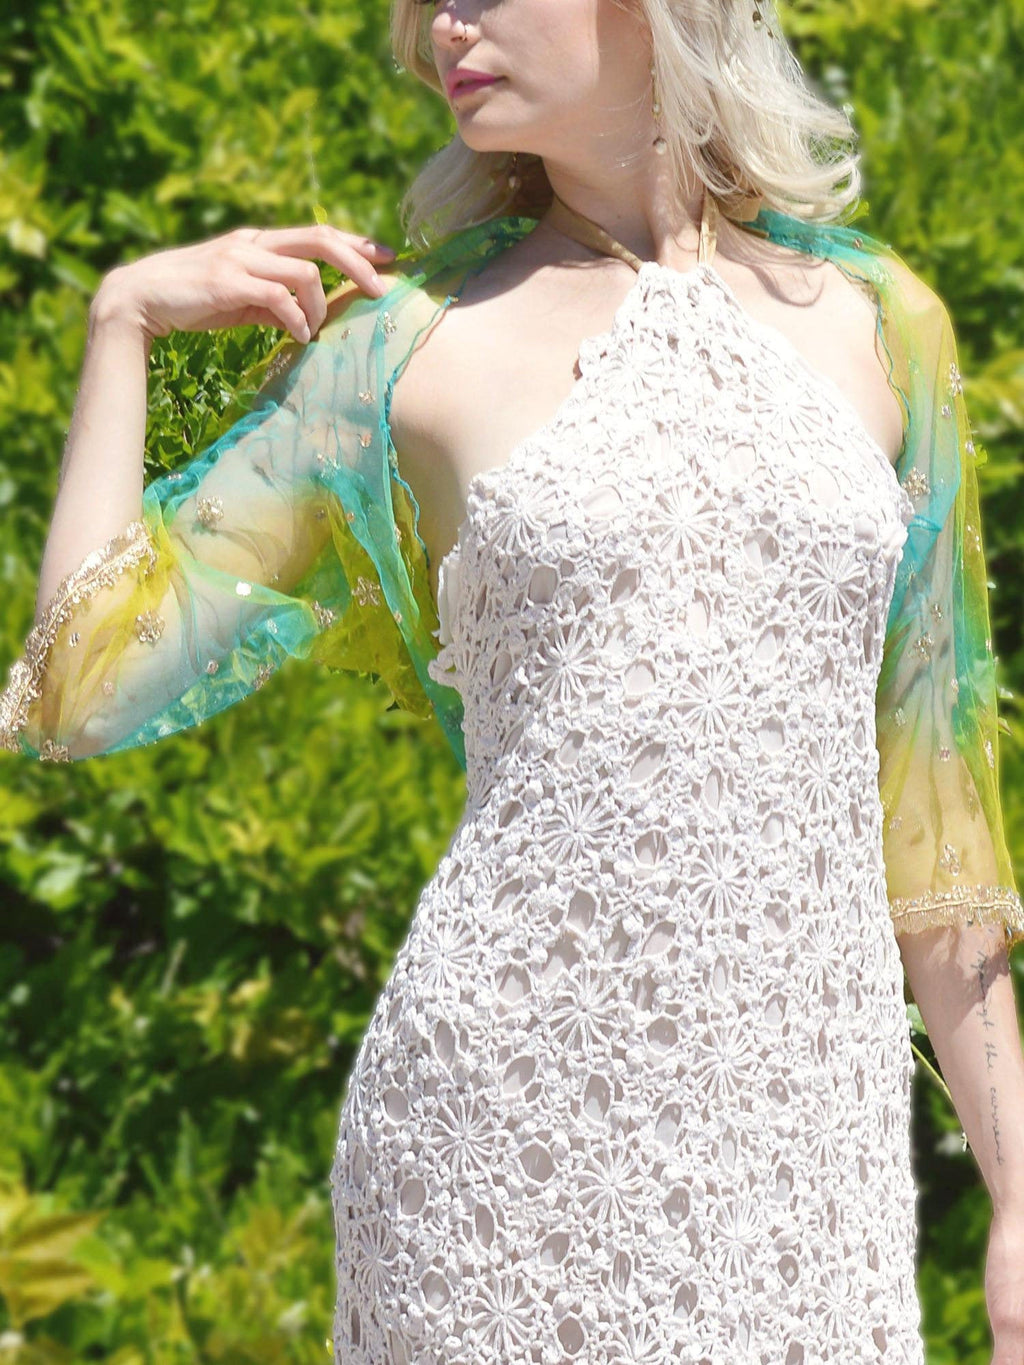 blonde bride in white crochet wedding dress and yellow and blue shrug.